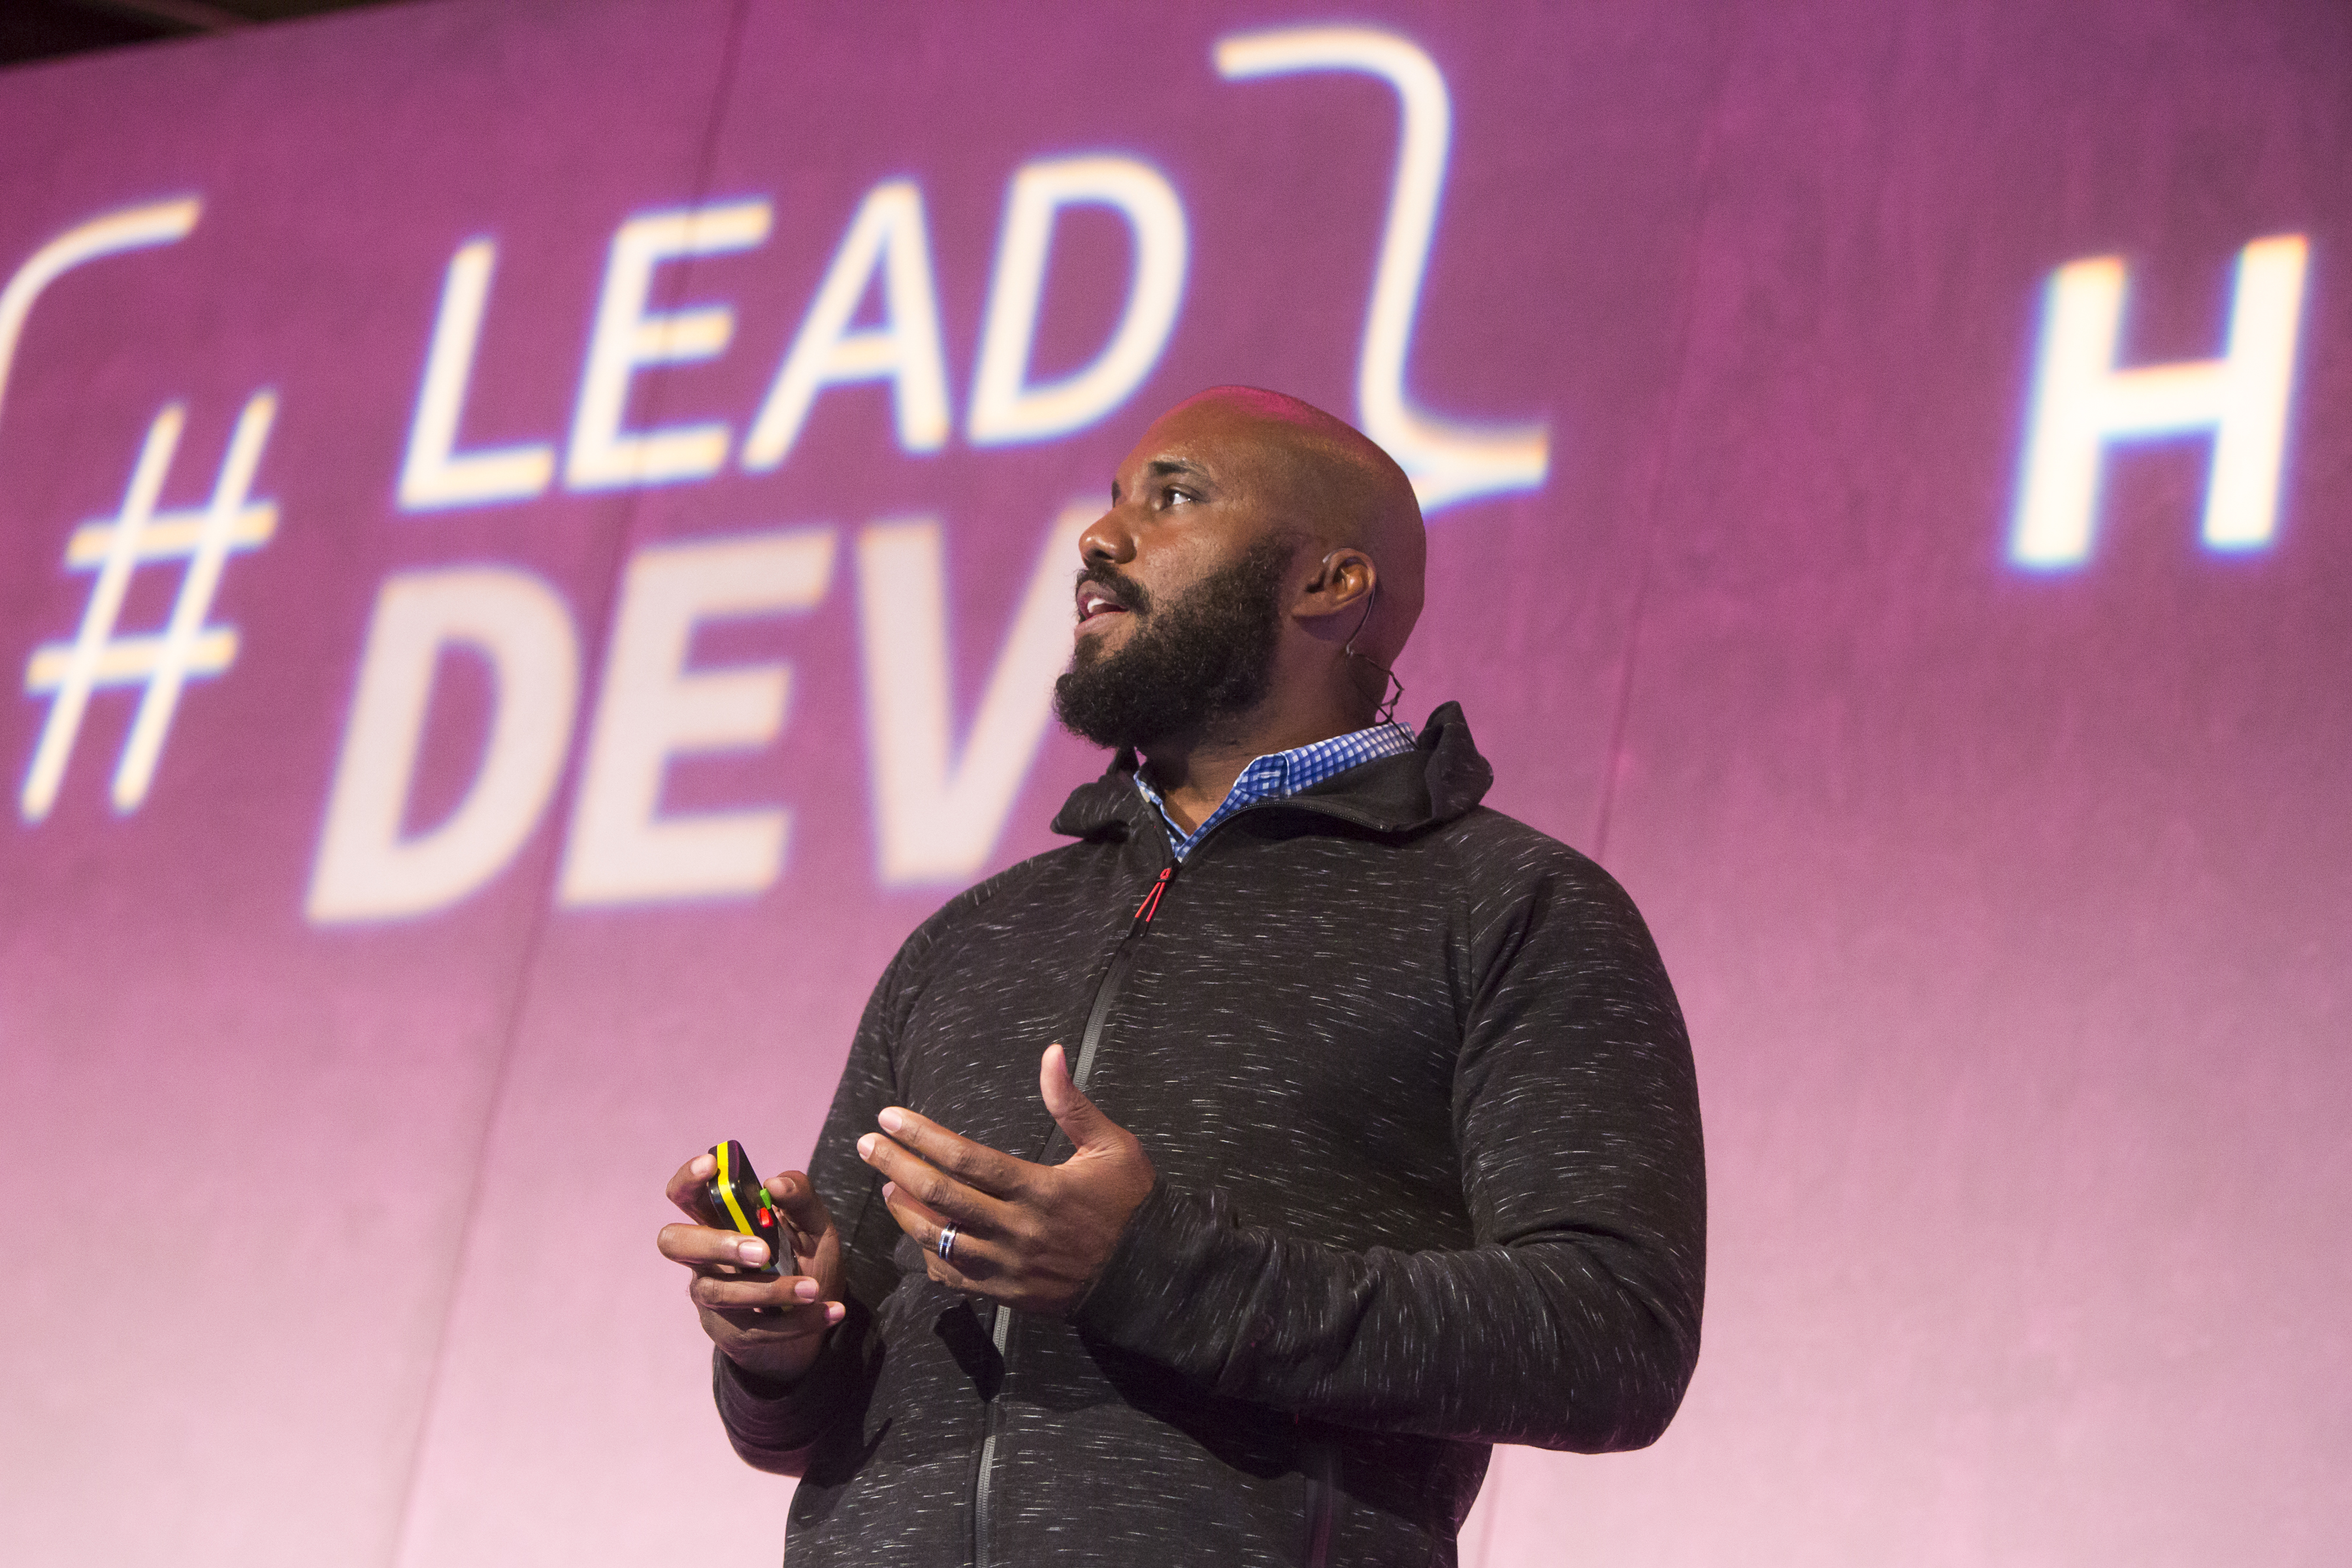 Speaking at The Lead Developer UK in London